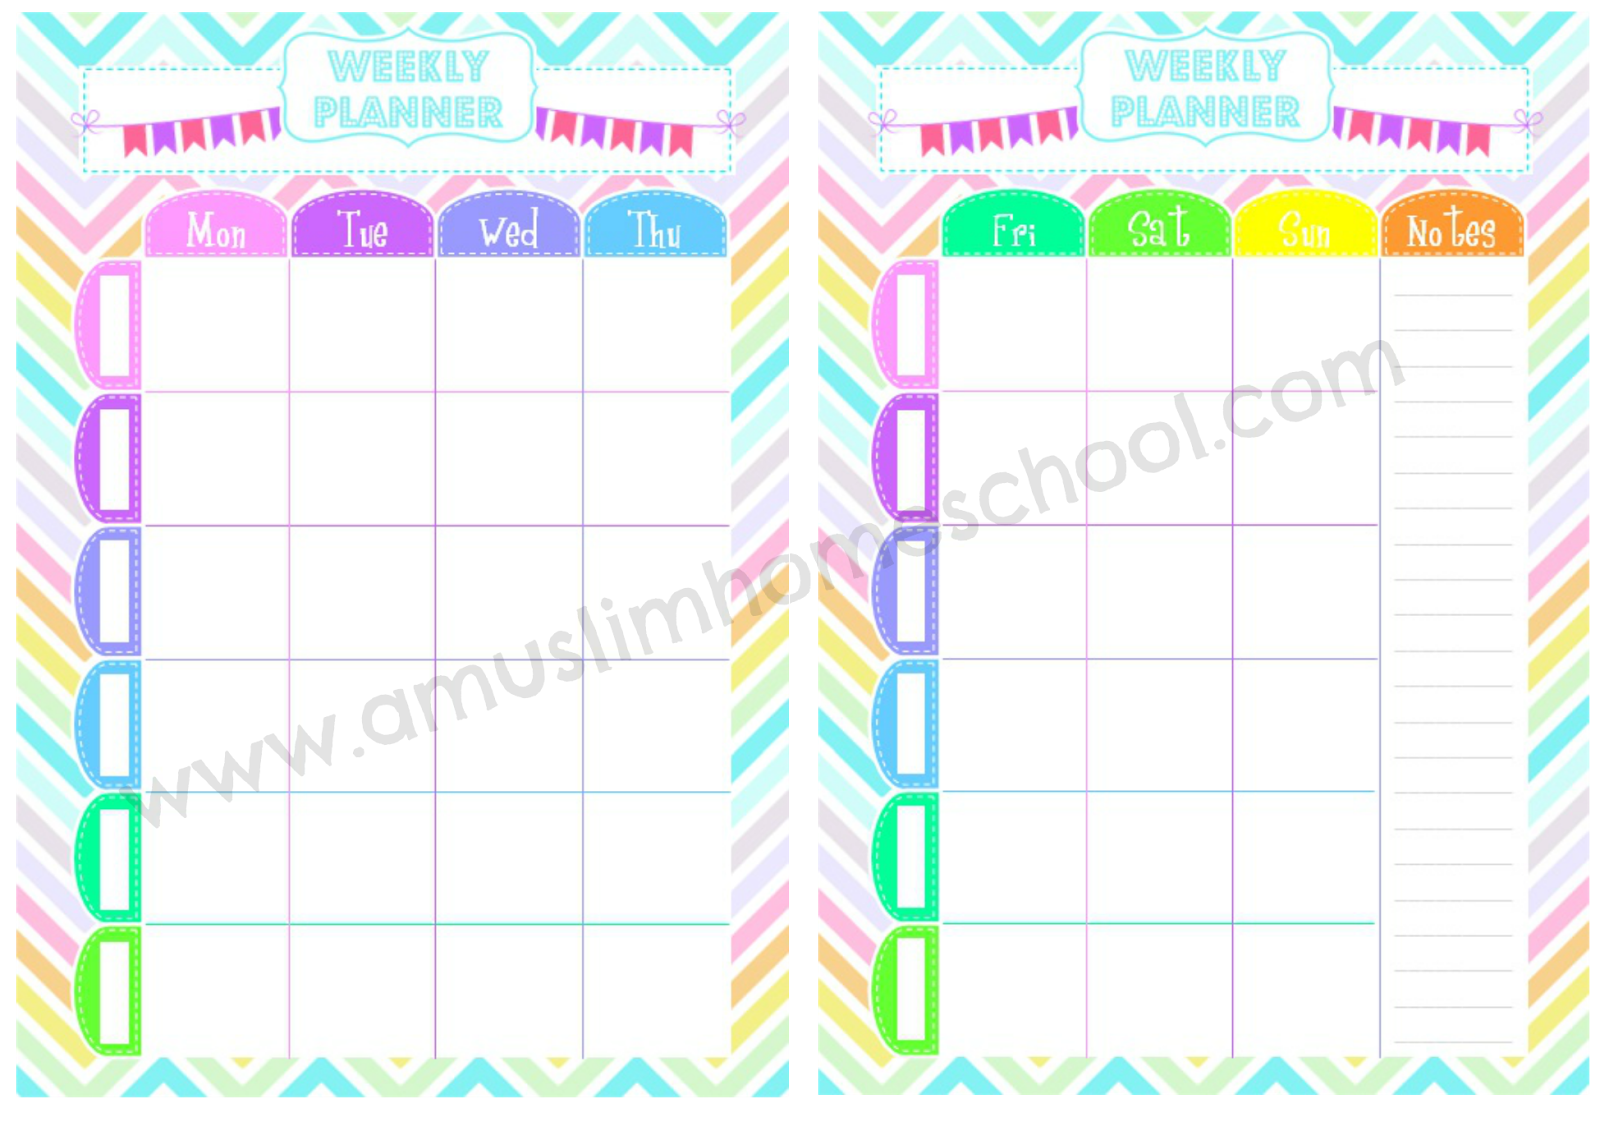 It is a picture of Free Weekly Planner intended for blank